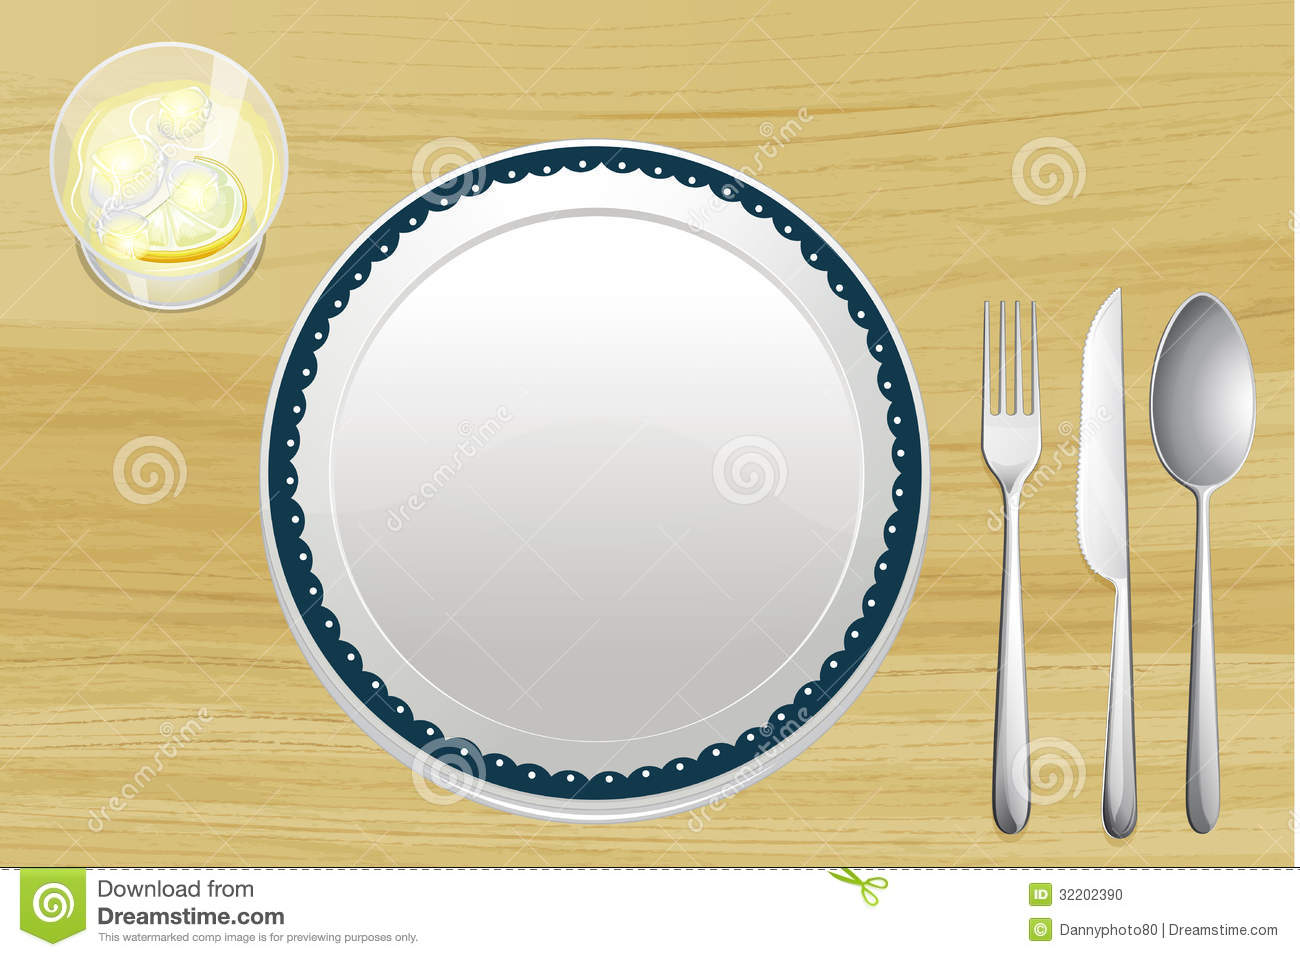 Full Plate Clipart - Clipart Suggest